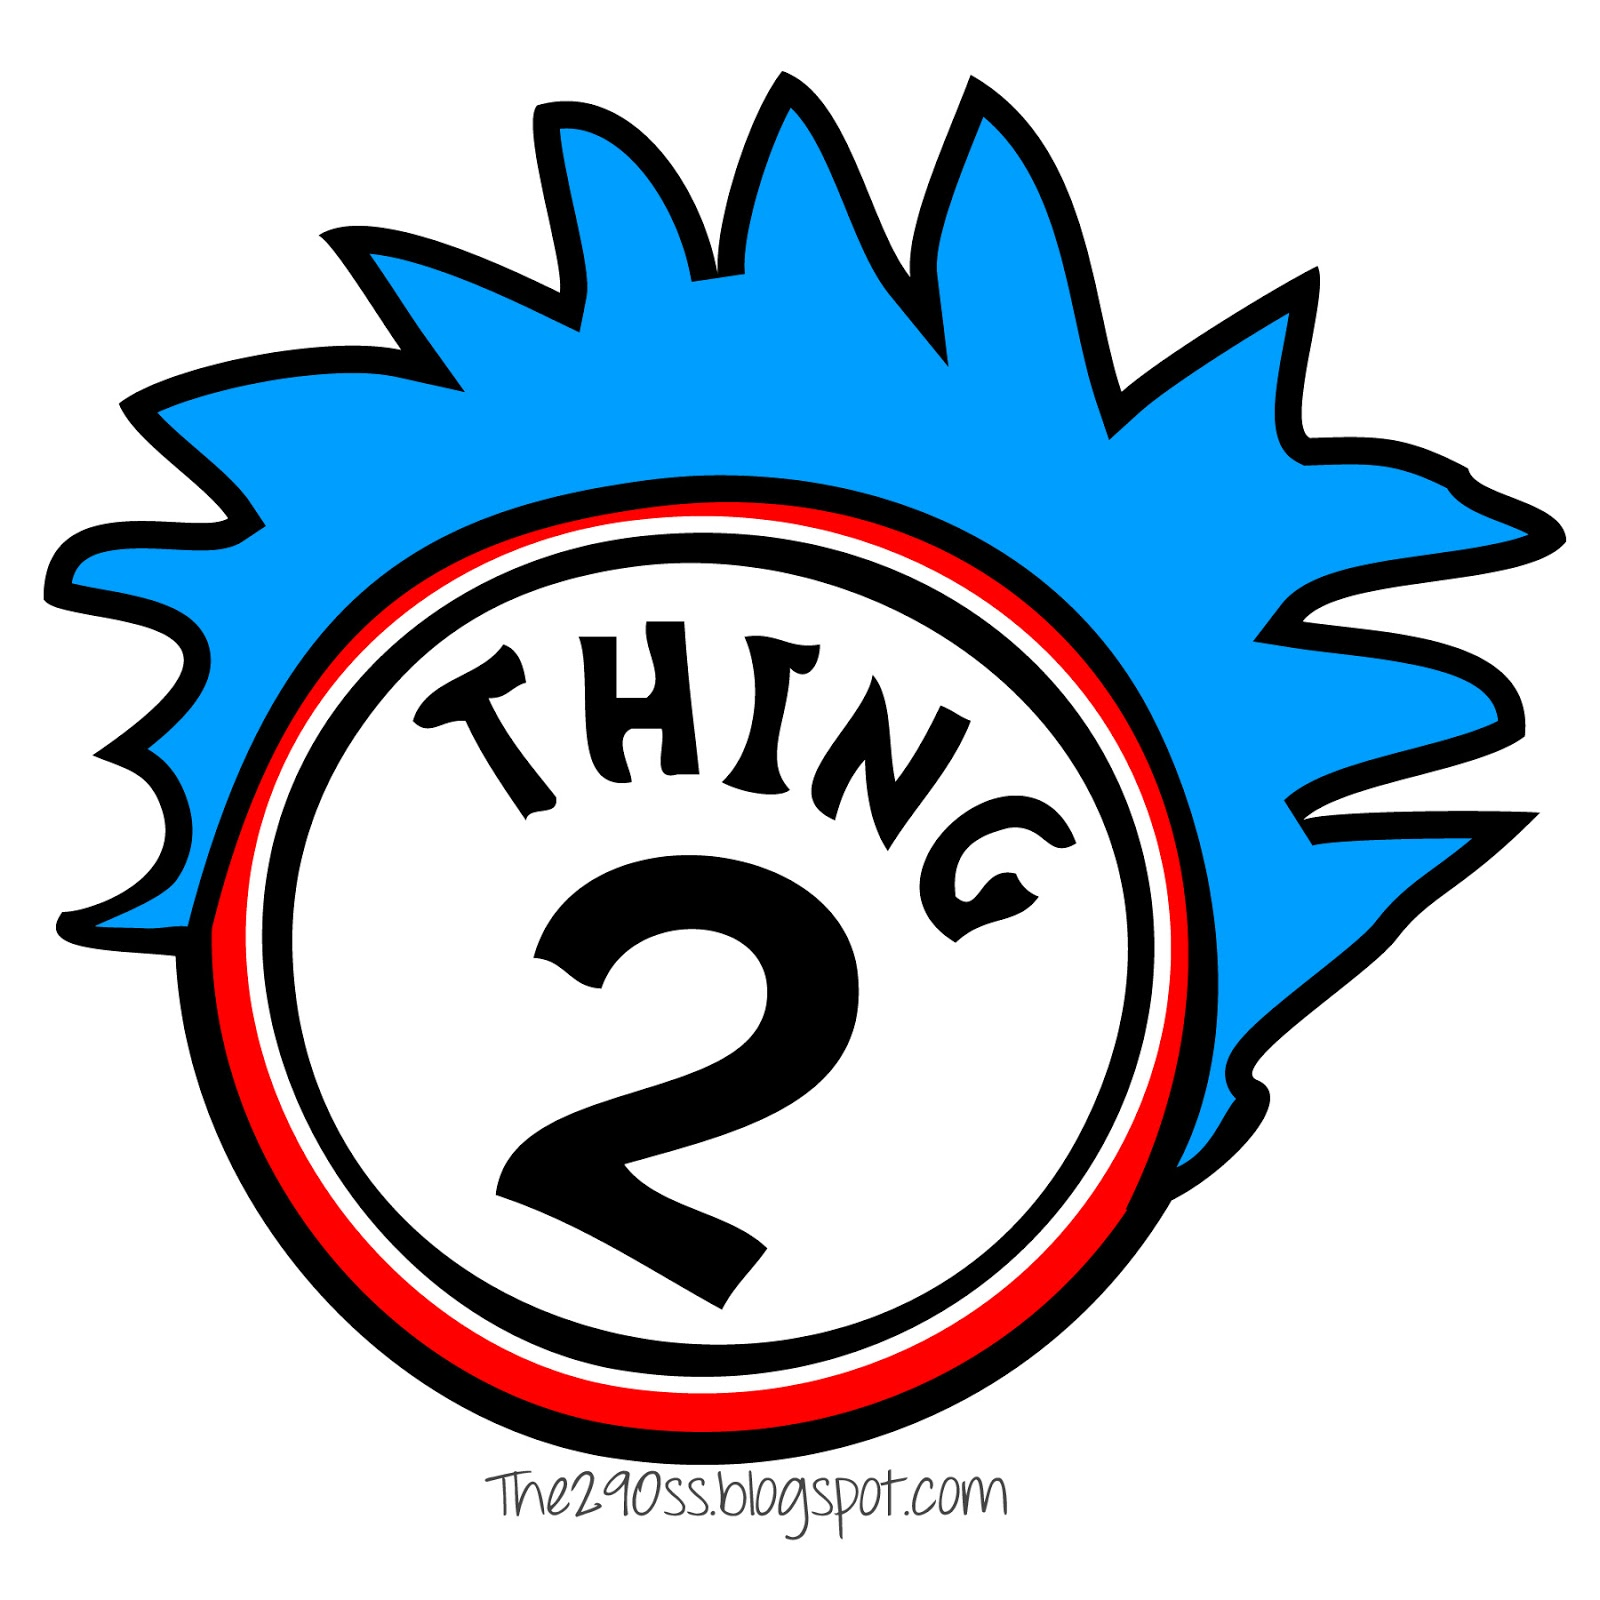 Thing 1 and thing 2 logo clipart svg Thing 1 and thing 2 clipart - ClipartFest svg